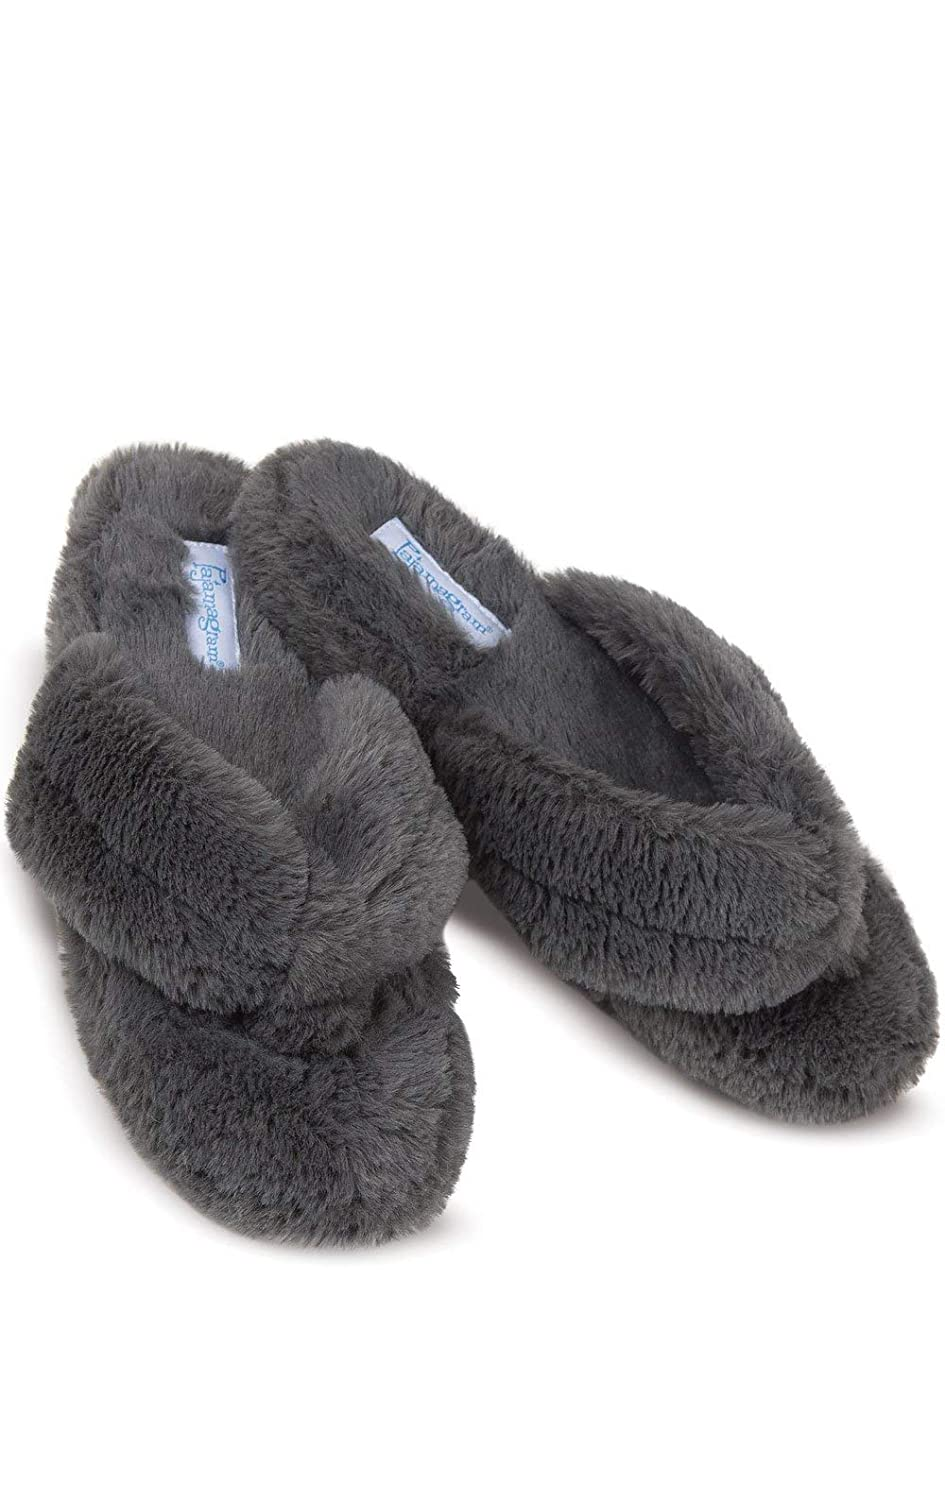 PajamaGram Soft Flip Flop Slippers Fuzzy Womens Slippers Washable